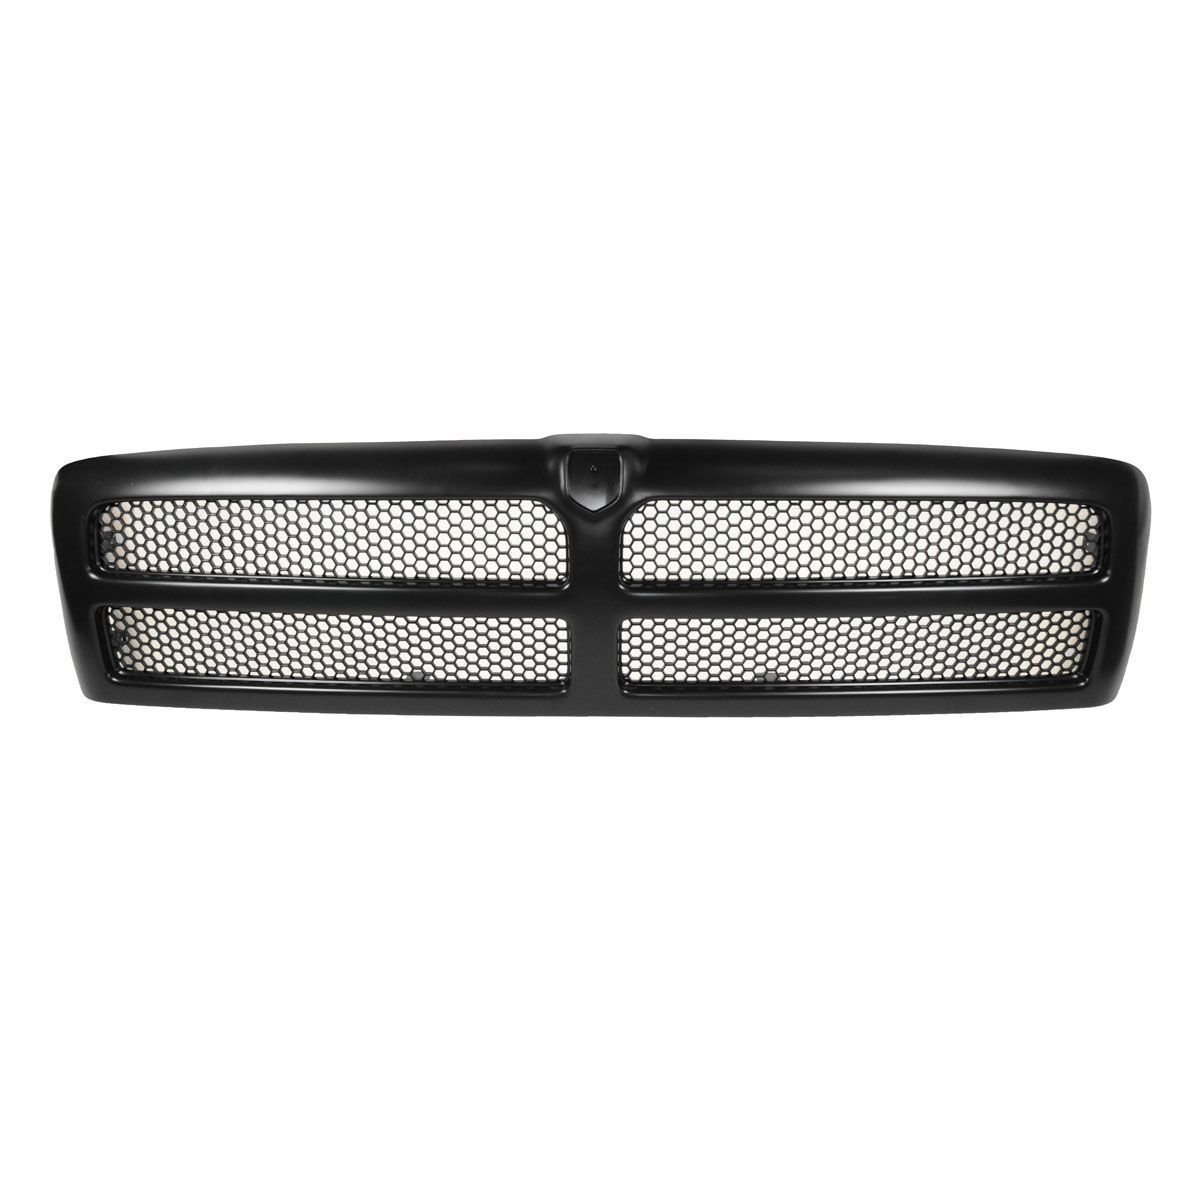 1994-2002 Grille Grill Black Aftermarket Front for Dodge Ram 4X4 2X4 1500 2500 3500 Pickup Truck ST Laramie